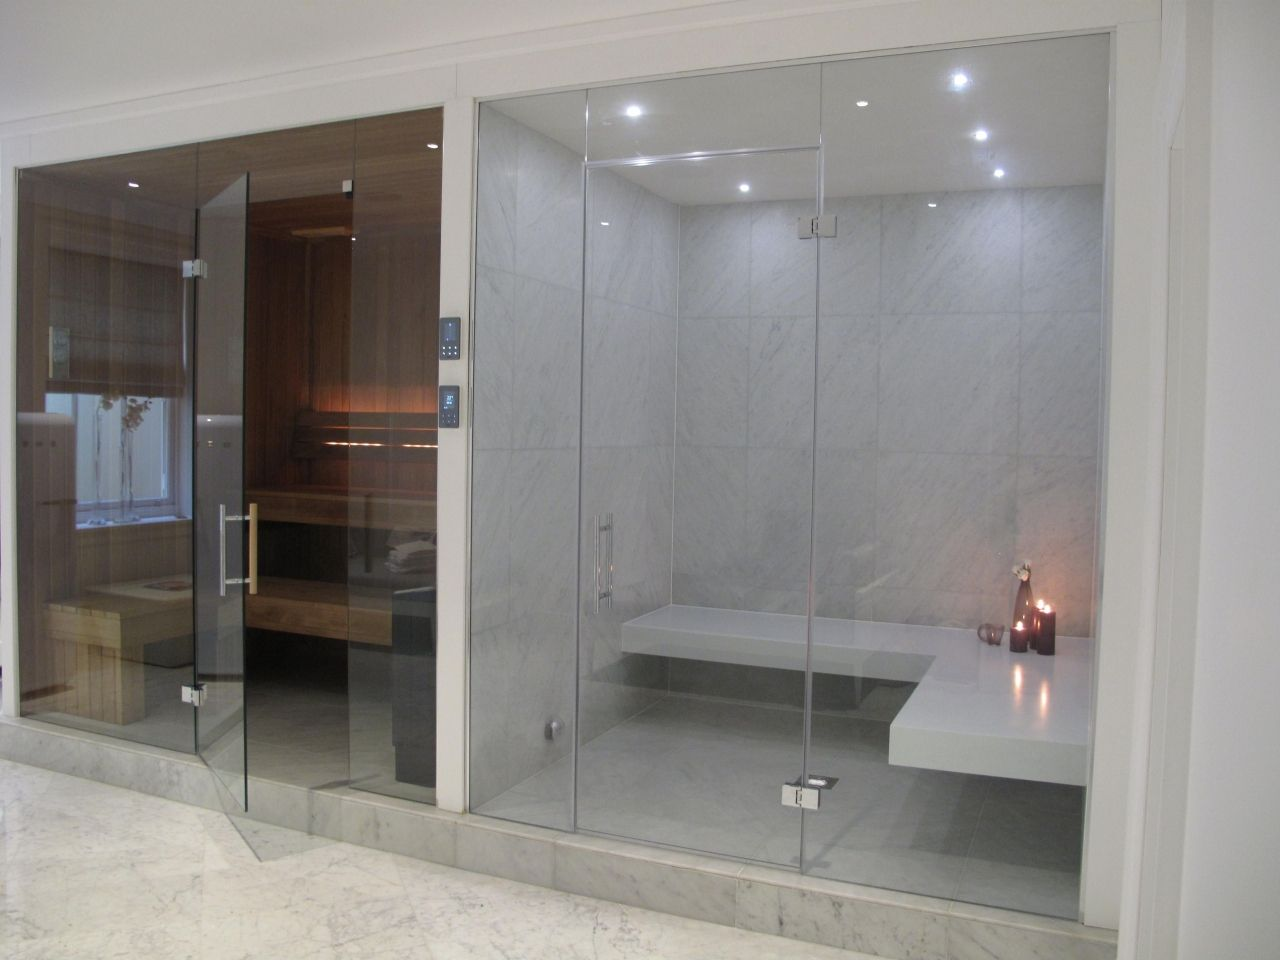 99 How To Make Steam Room In Your Bathroom Check More At Https